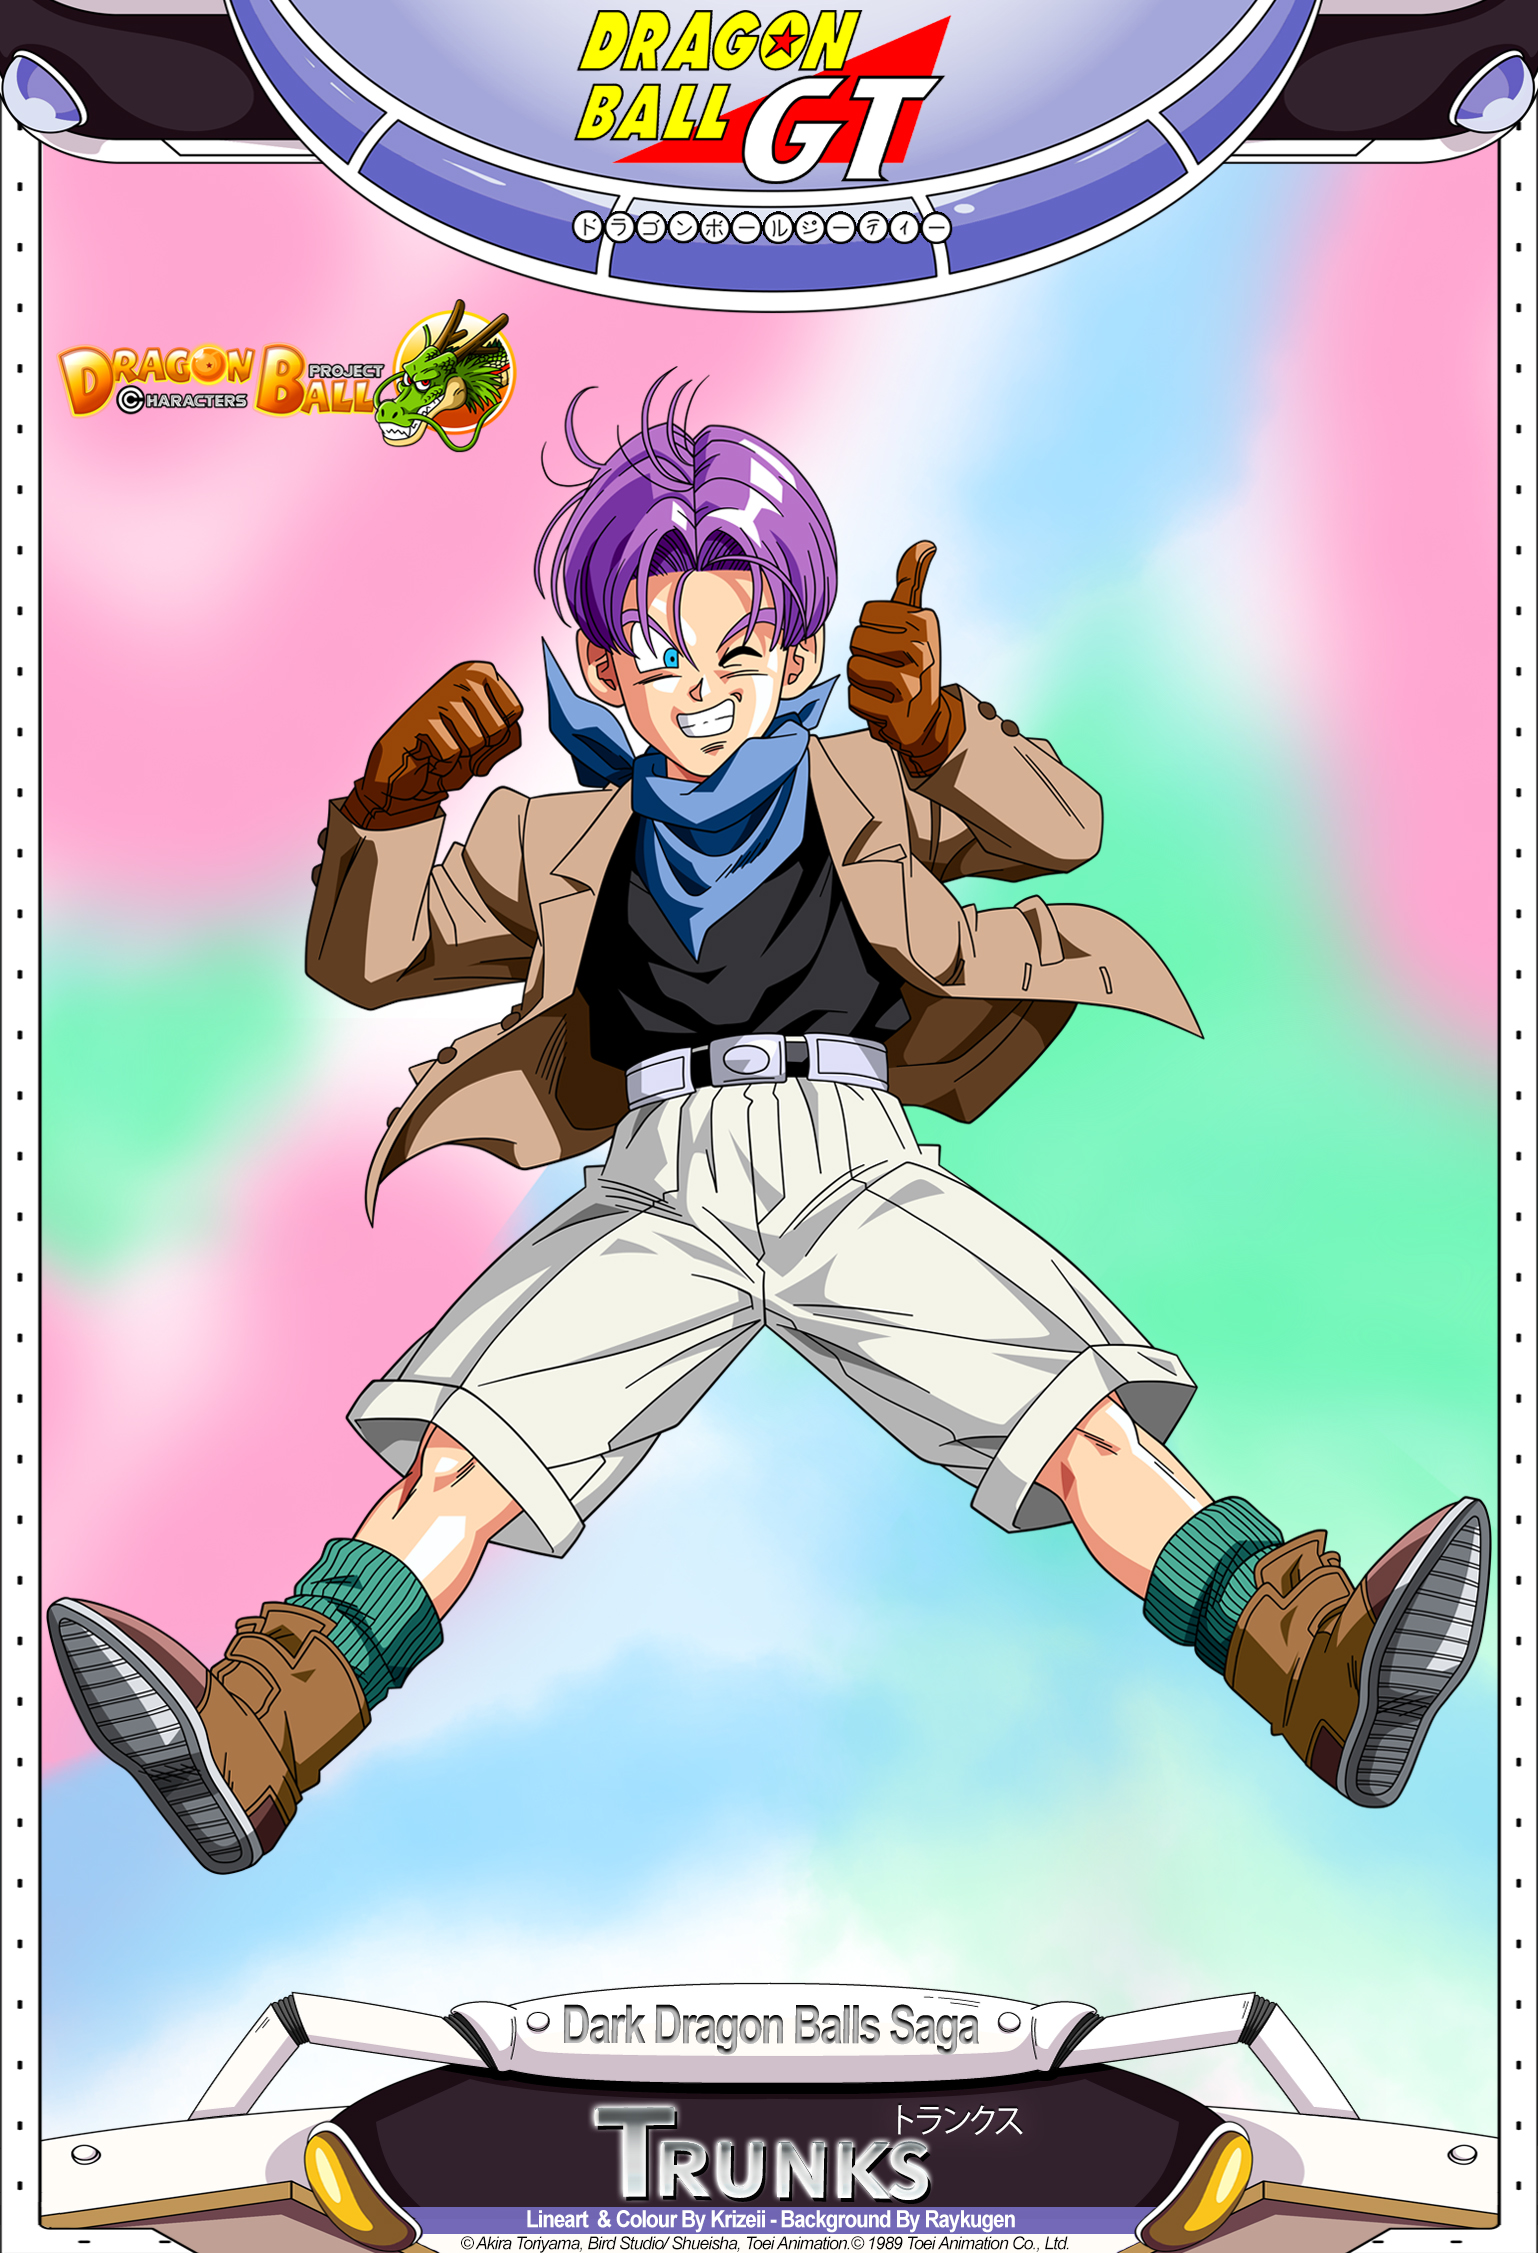 Dragon Ball GT  Trunks by DBCProject on DeviantArt